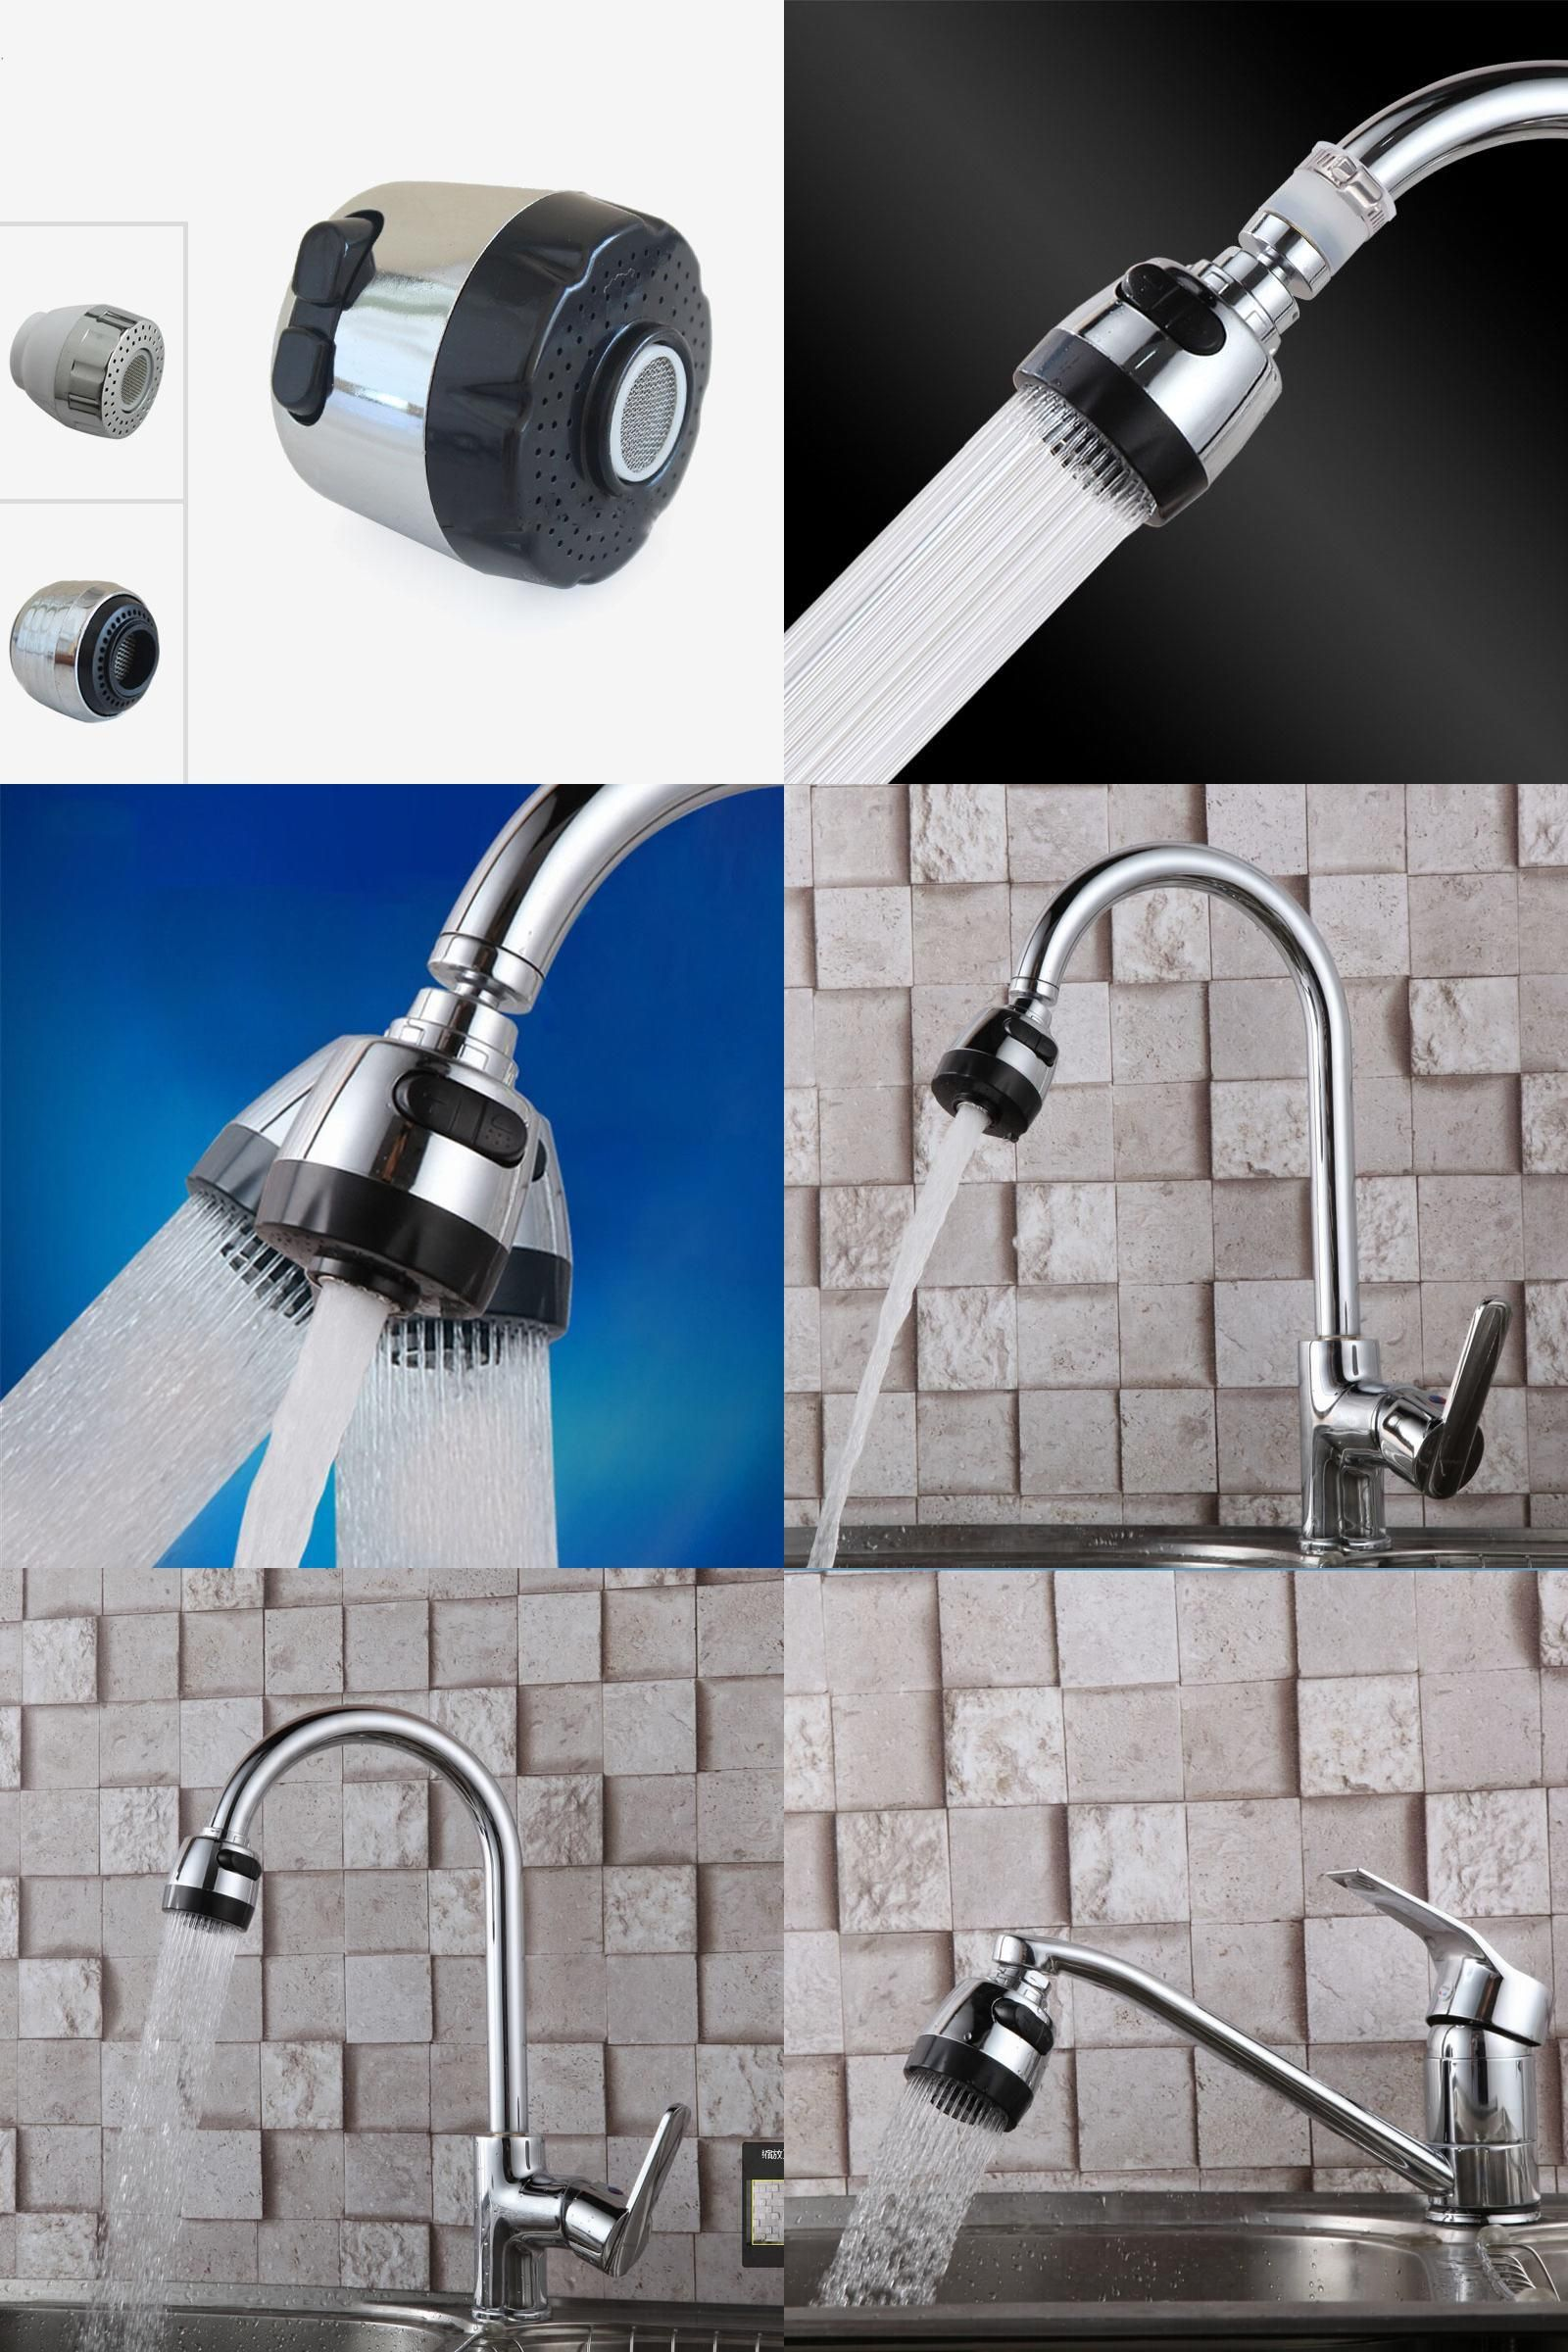 Visit To Buy Tap Water Saving Nozzle Faucet Filter Bathroom Sink Aerator Kitchen Faucet Accessories He Sink Water Filter Drop In Bathroom Sinks Bathroom Sink